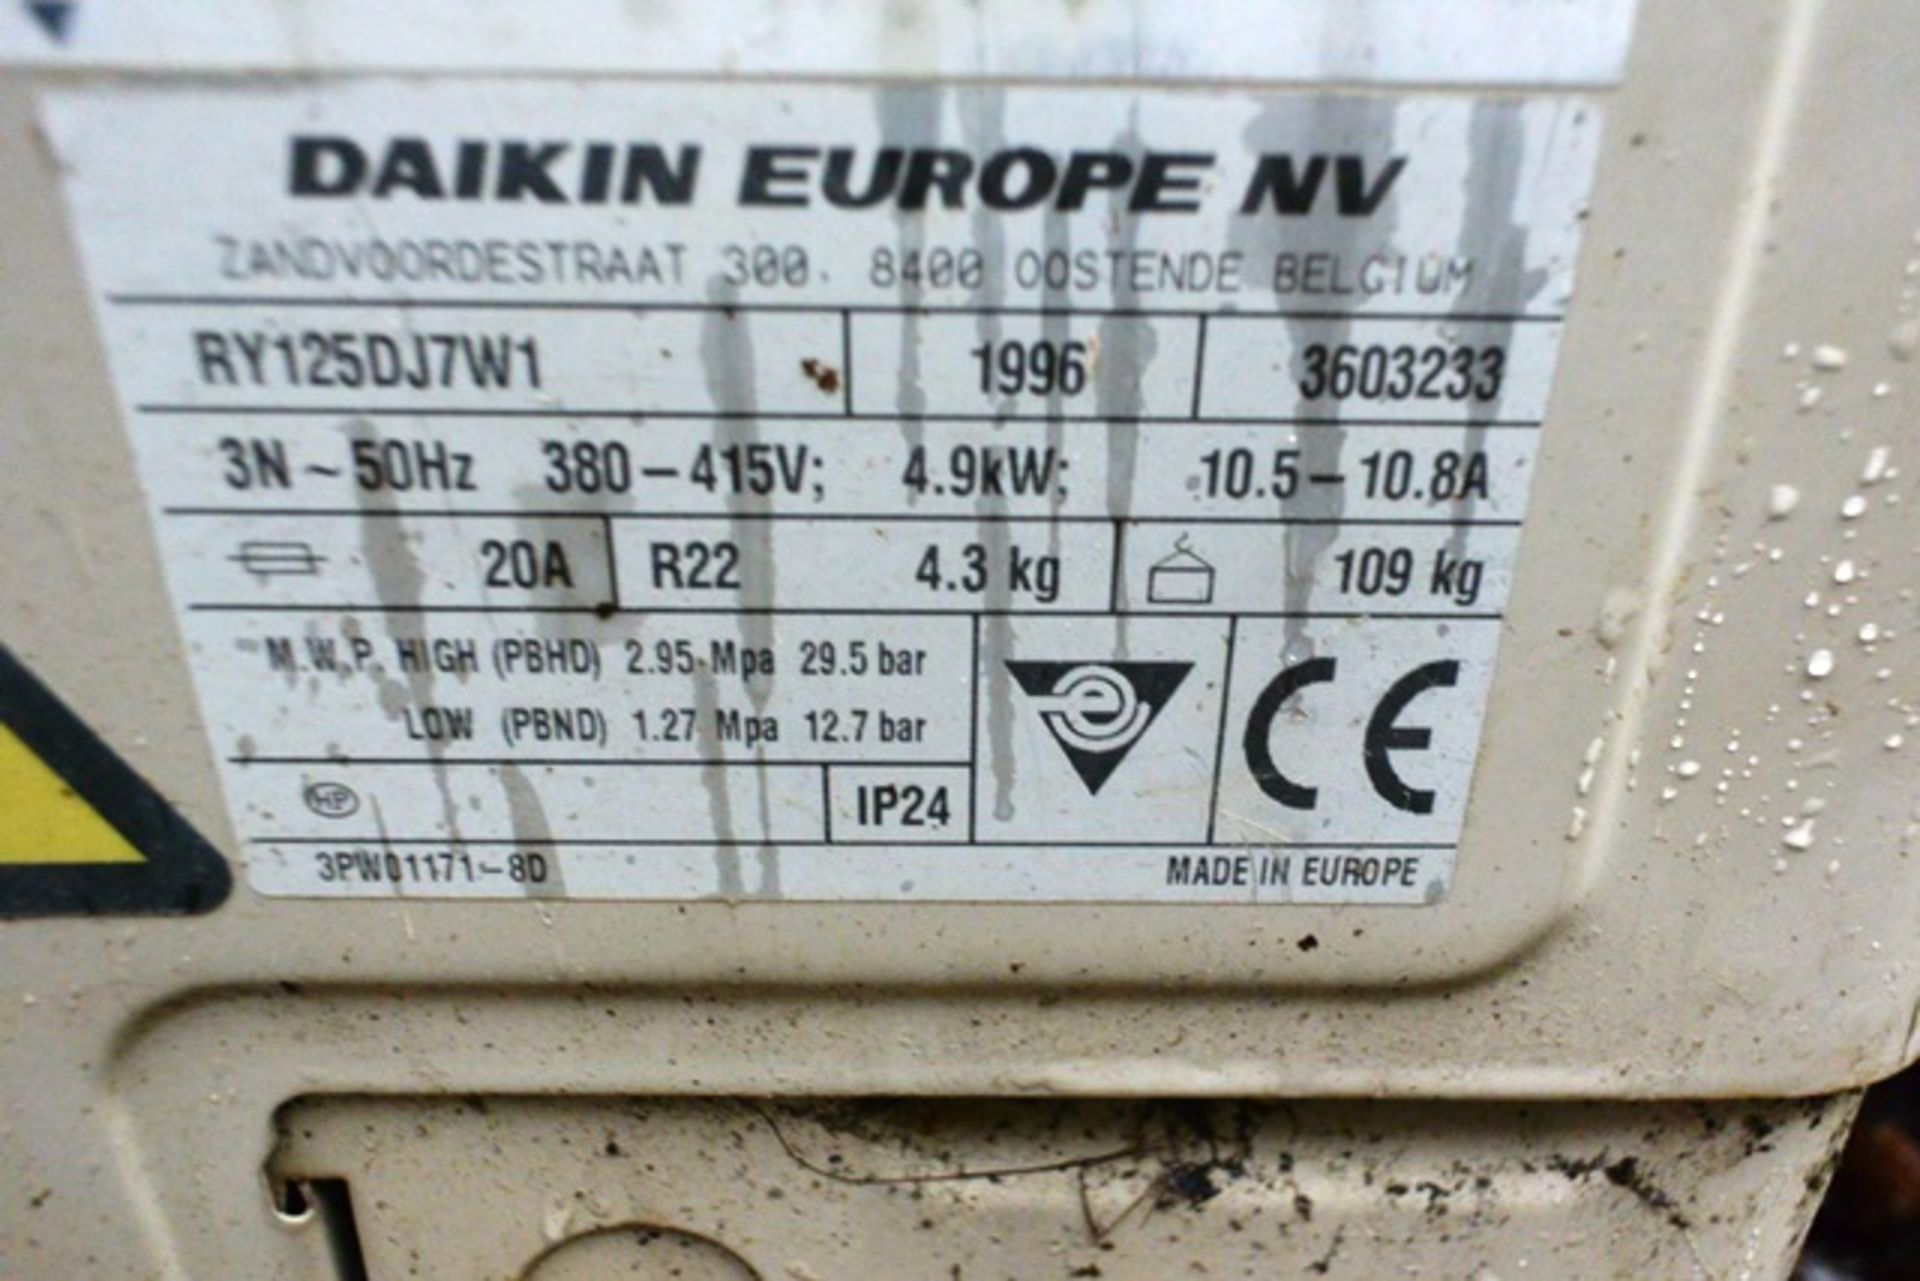 Daiken Skyair RY 125 DJ721, serial no. 3603233 (1996), refrigerant R22 (Please note: units have been - Image 3 of 3